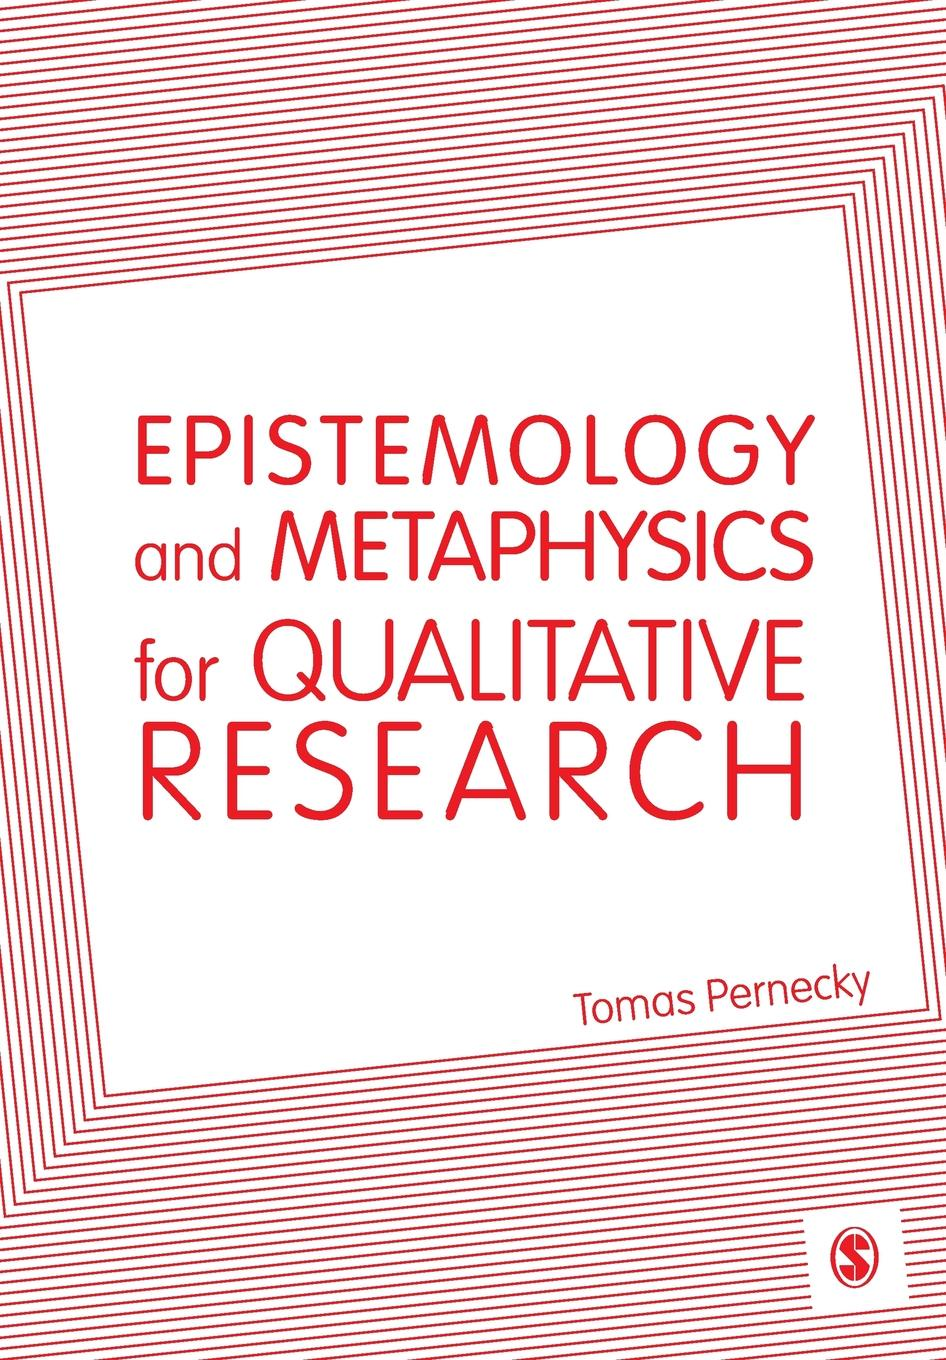 Tomas Pernecky Epistemology and Metaphysics for Qualitative Research stephen hetherington metaphysics and epistemology a guided anthology